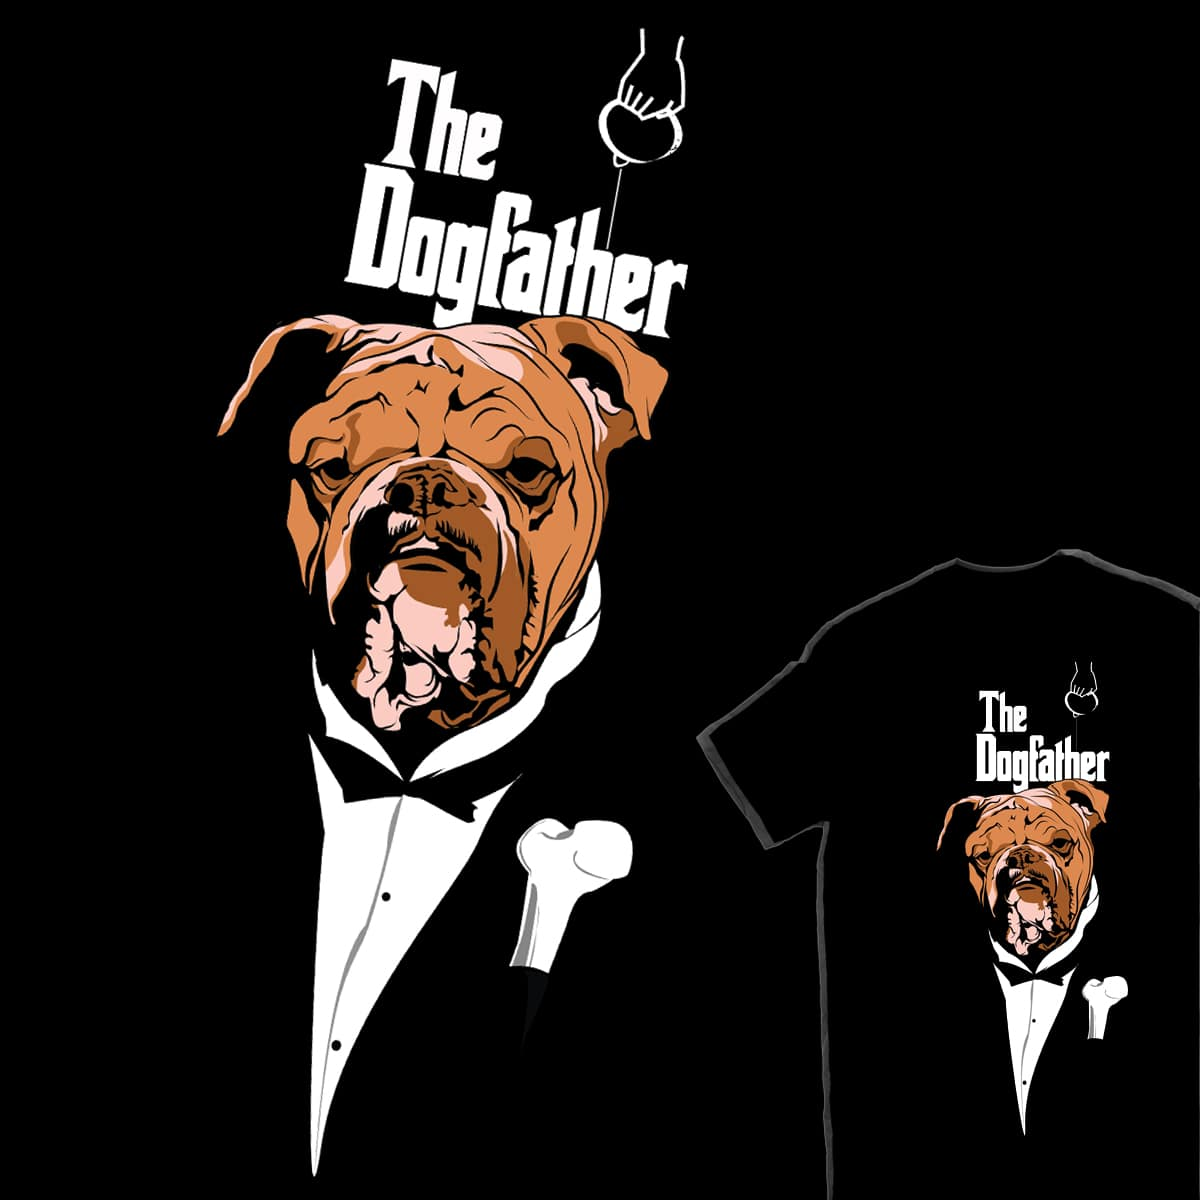 The Dogfather by PopeCastro on Threadless